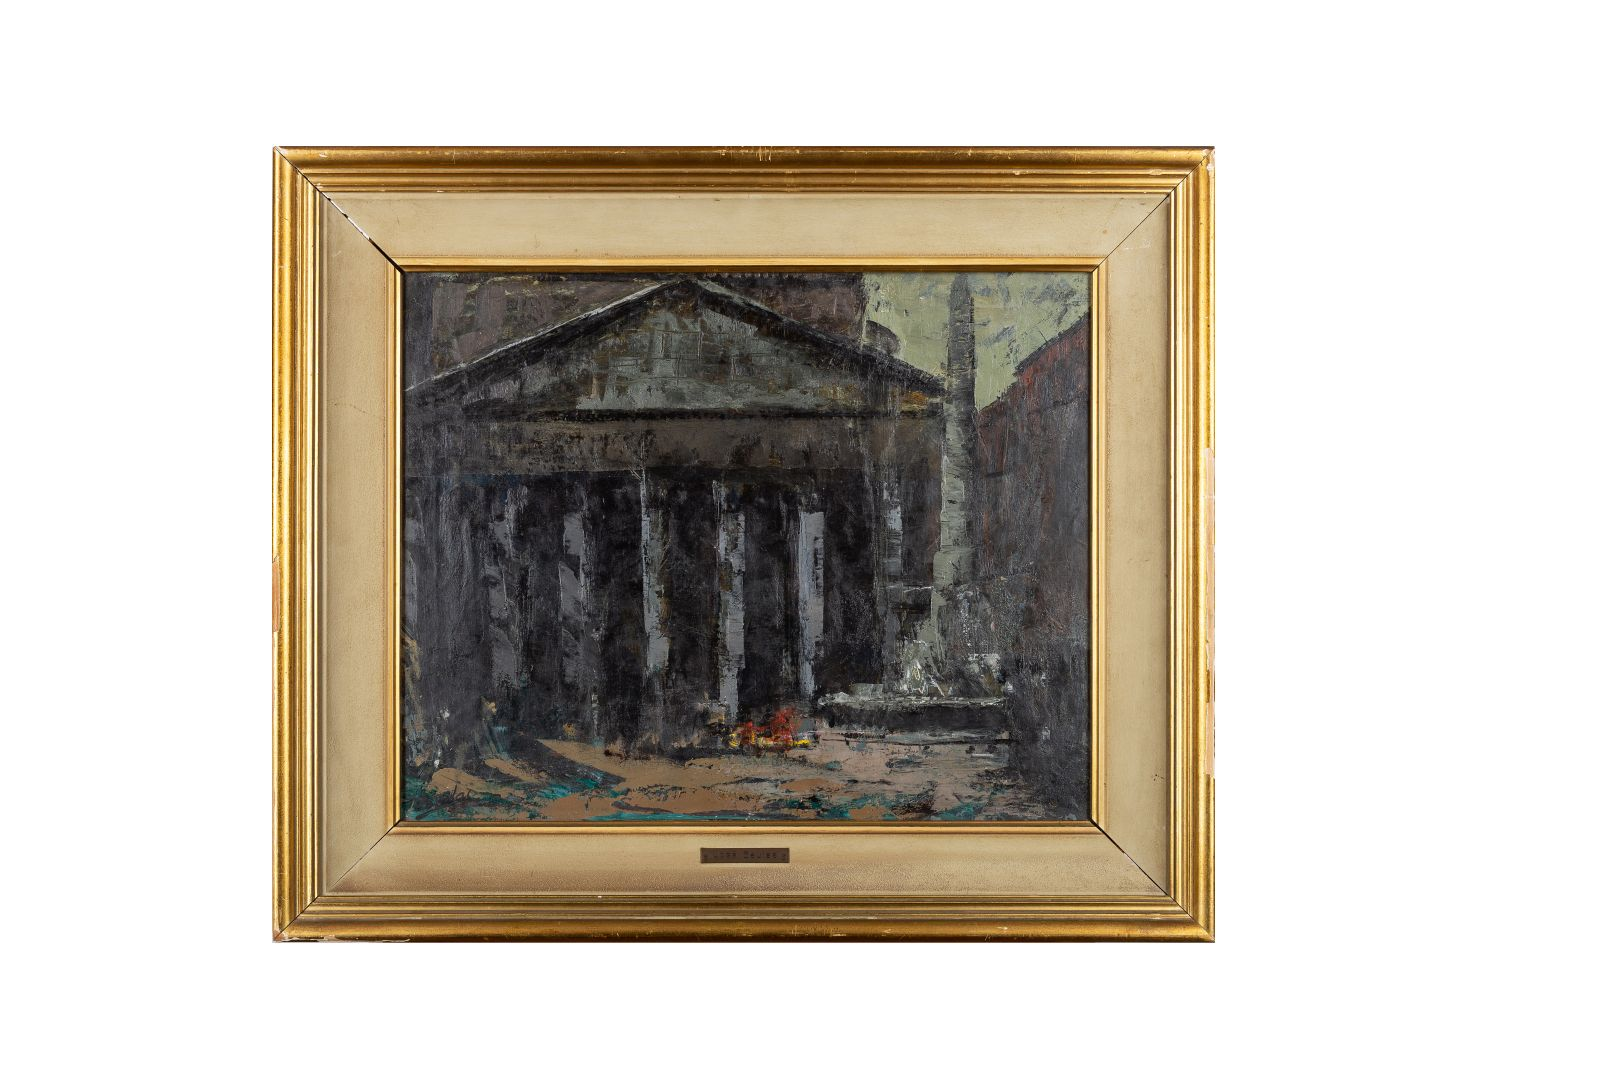 "#46 José Beulas Recasens, ""The Pantheon in Rome"", around 1955 